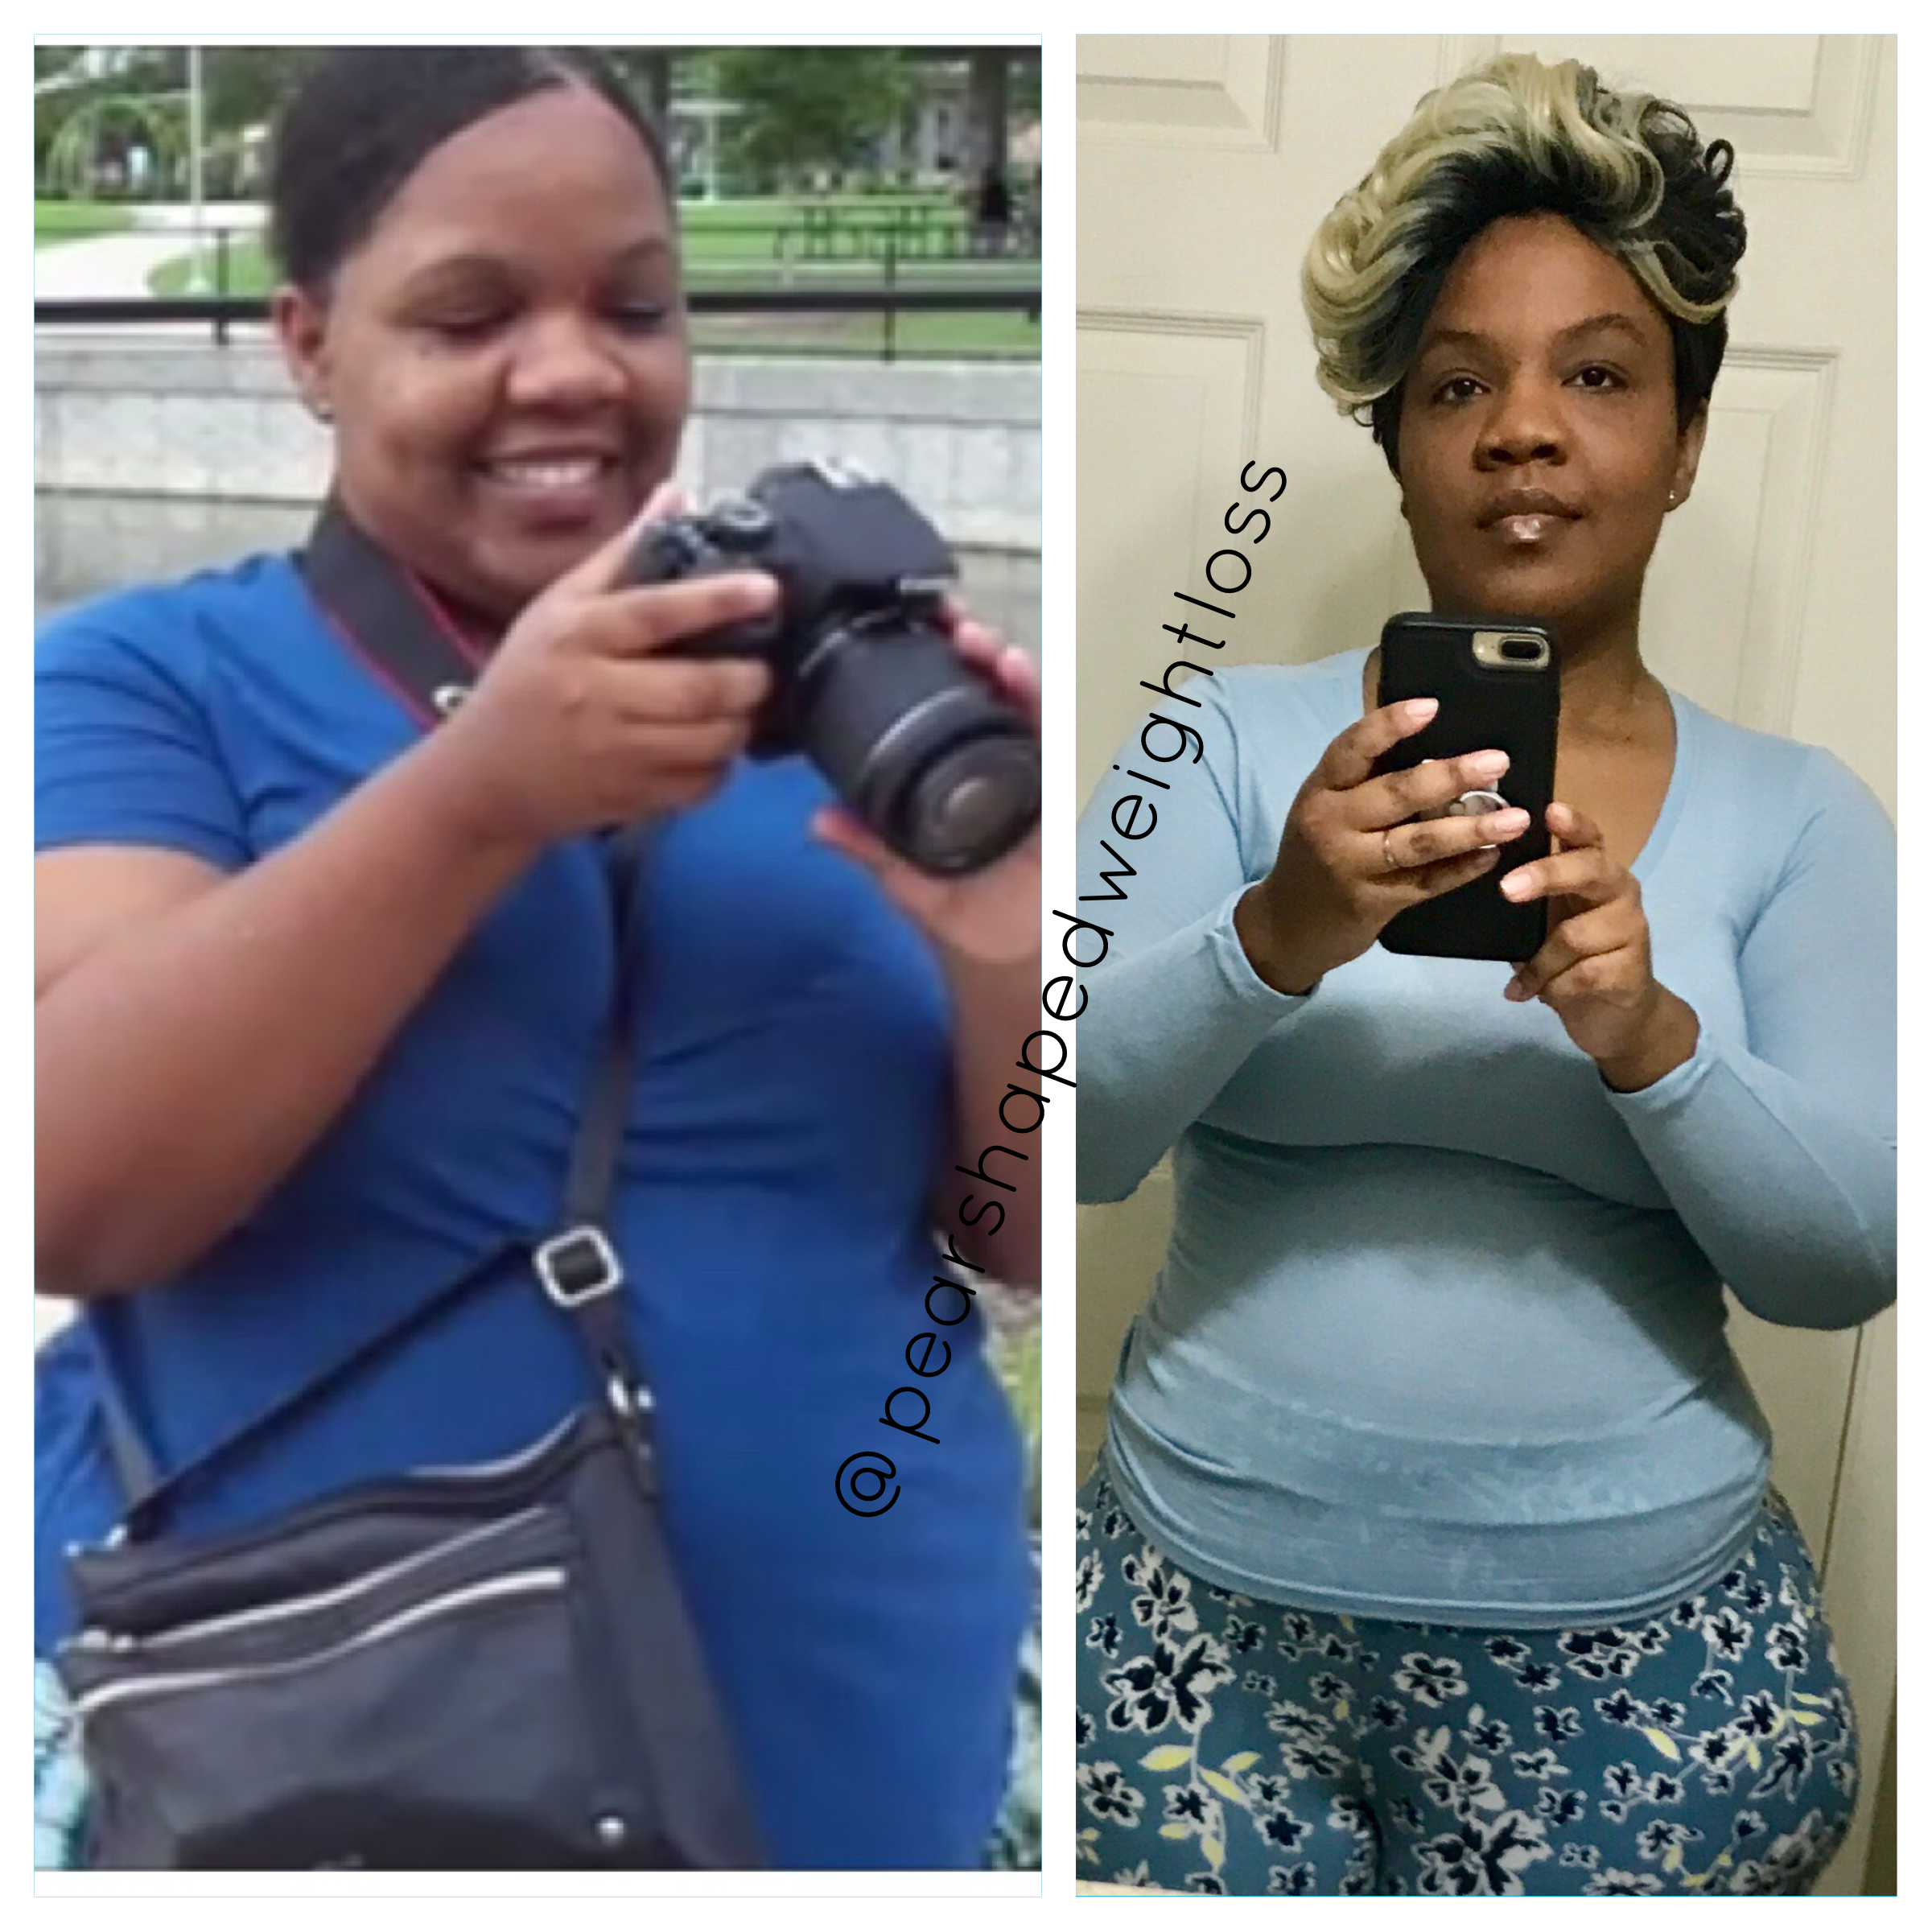 Pearshapedfitness #weightlossjourney #weightlossbeforeandafter #weightlosstips #healthy #getfit #weightlosstransformation